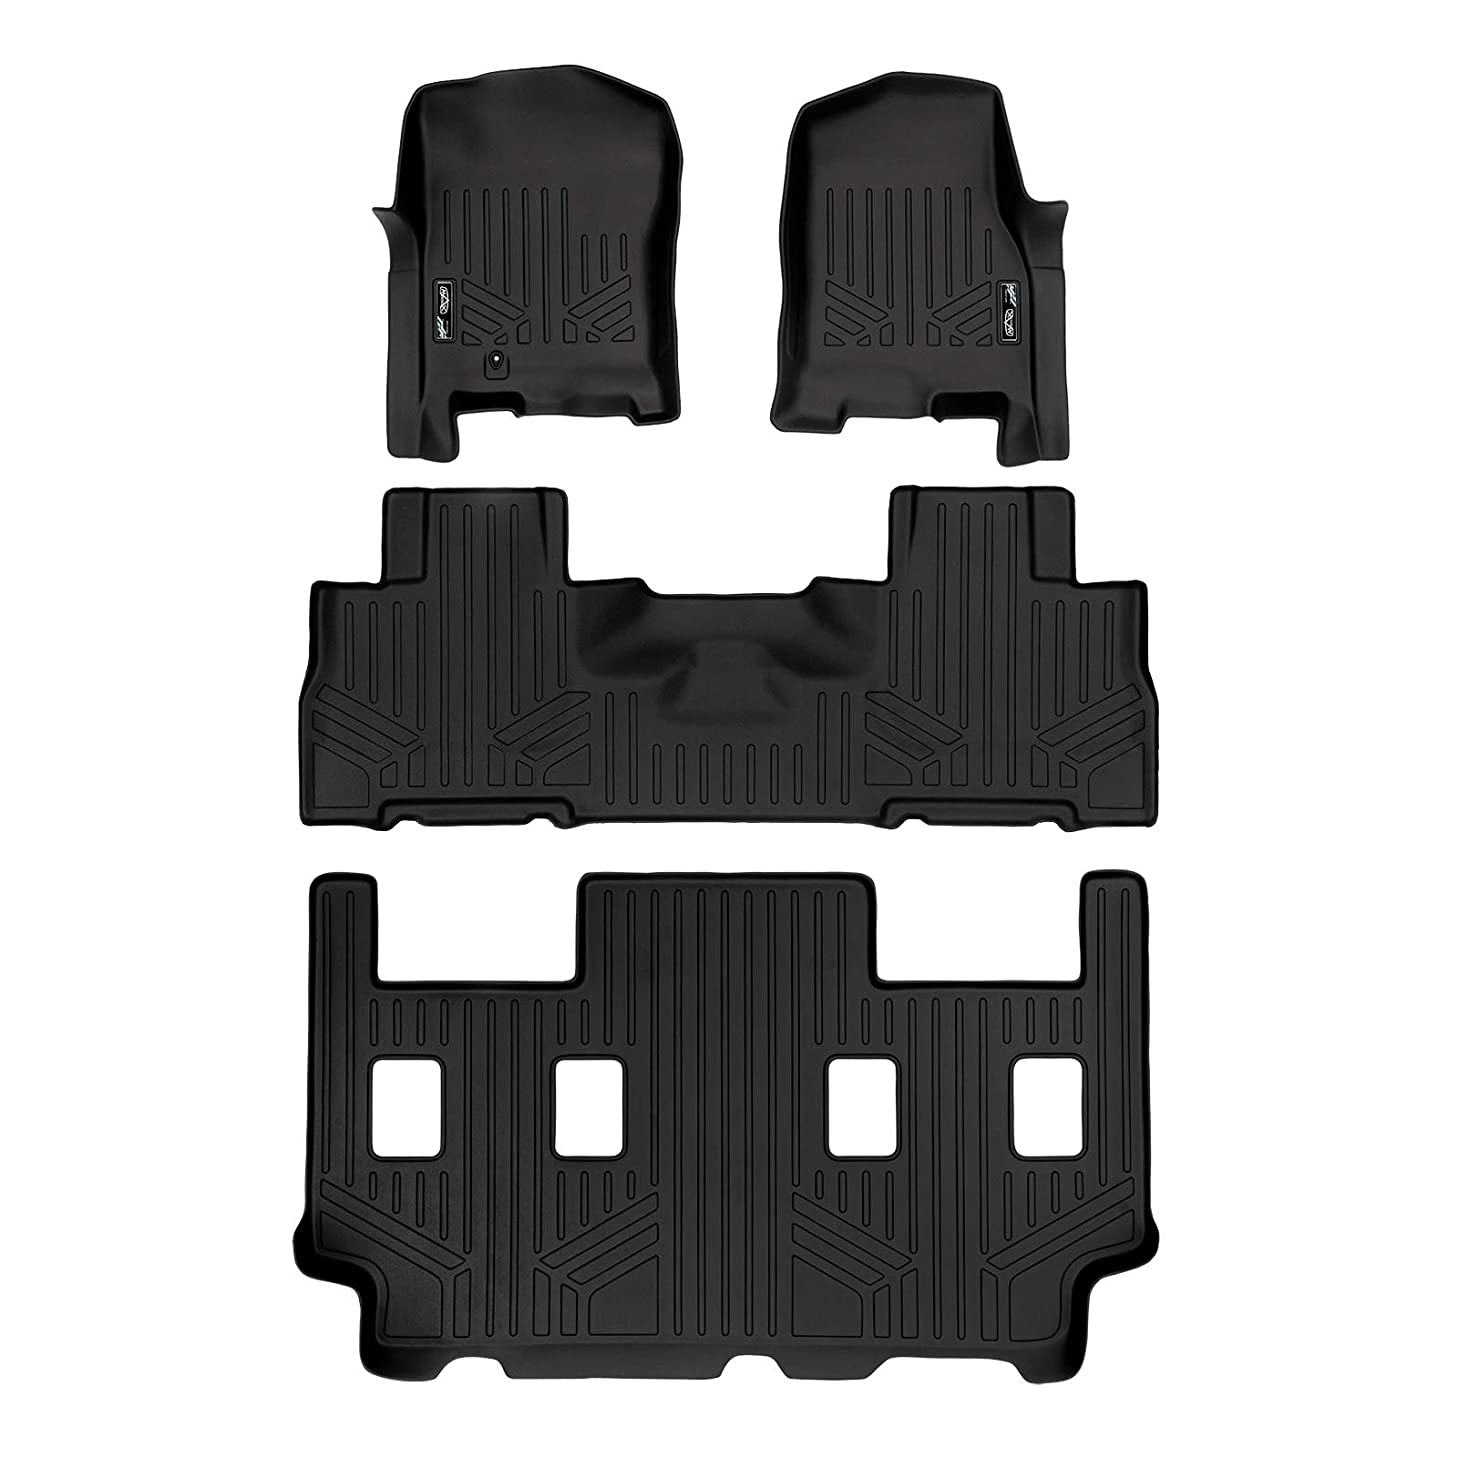 SMARTLINER Floor Mats 3 Row Liner Set Black for 07-10 Expedition EL / Navigator L with 2nd Row Bucket Seats without Console